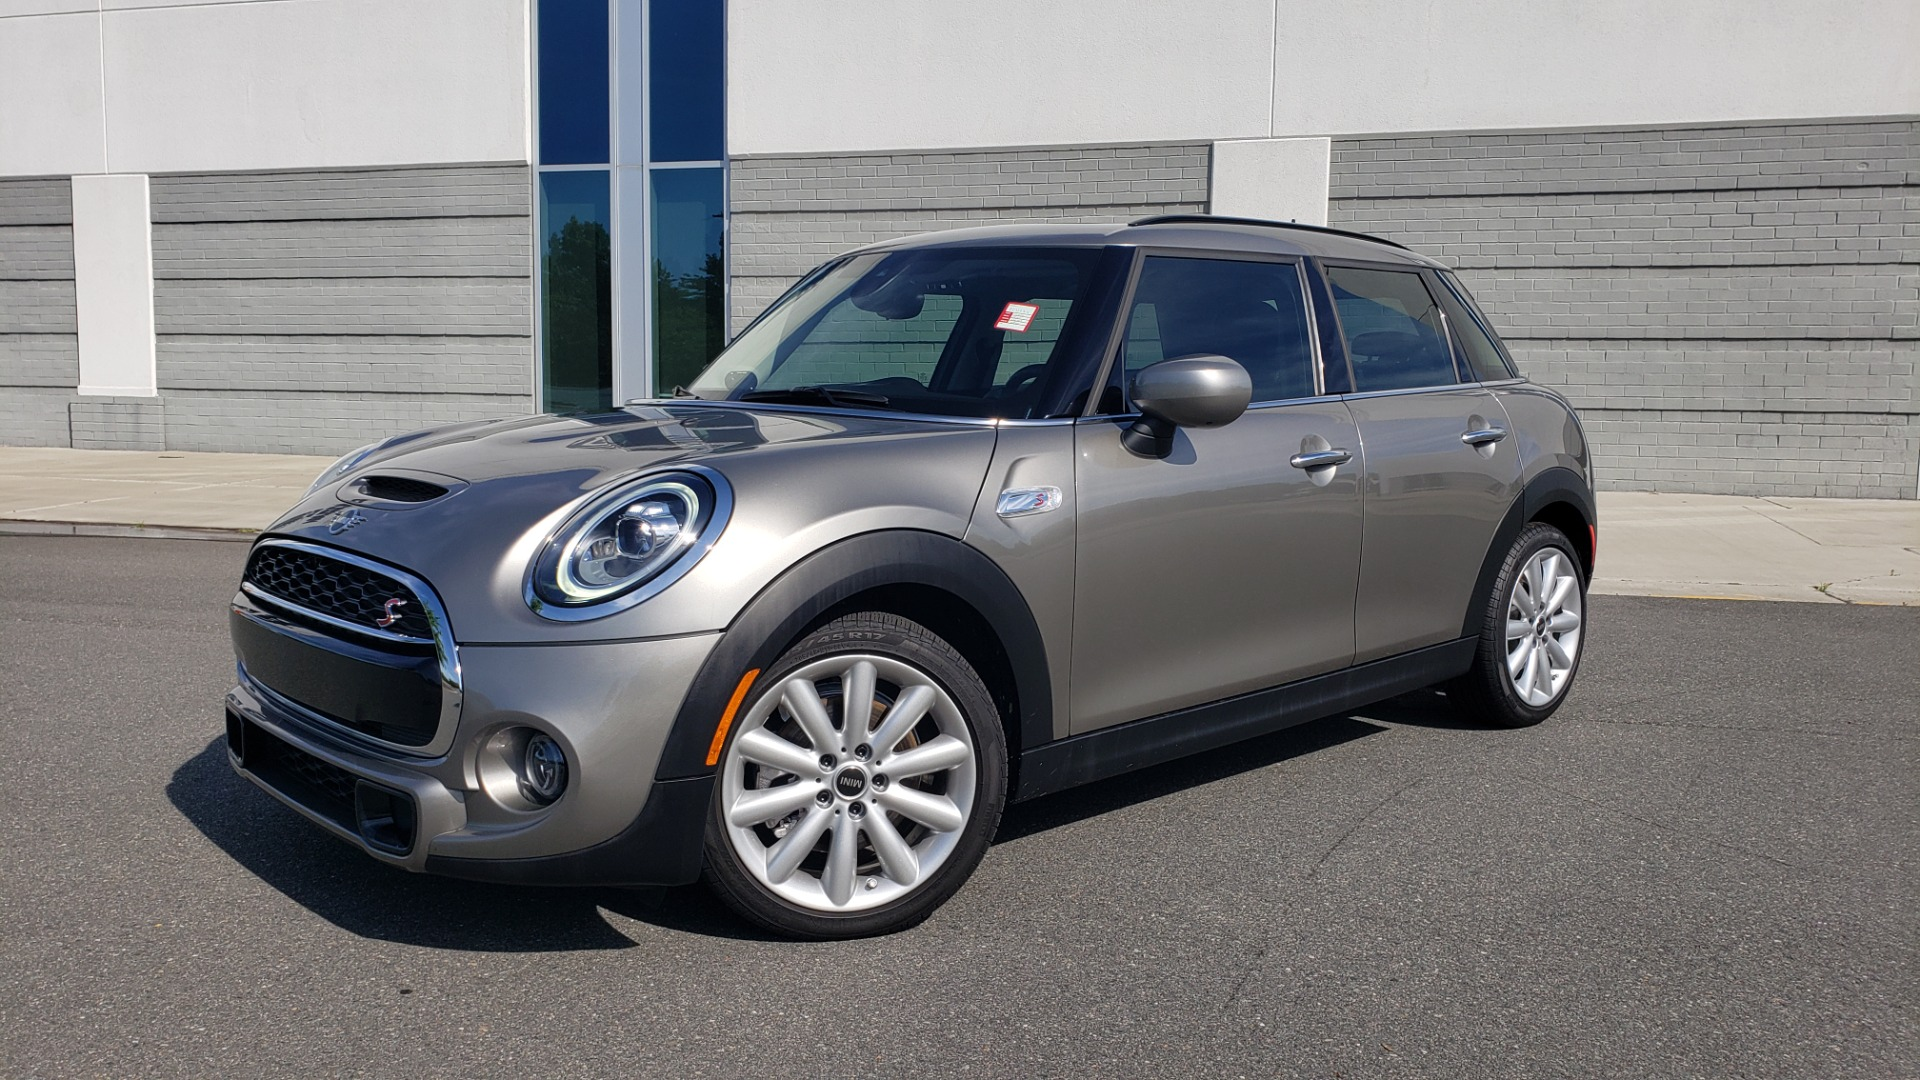 Used 2020 MINI HARDTOP 4 DOOR COOPER S / NAV / SUNROOF / AUTO / H/K SND / REARVIEW for sale $28,495 at Formula Imports in Charlotte NC 28227 1